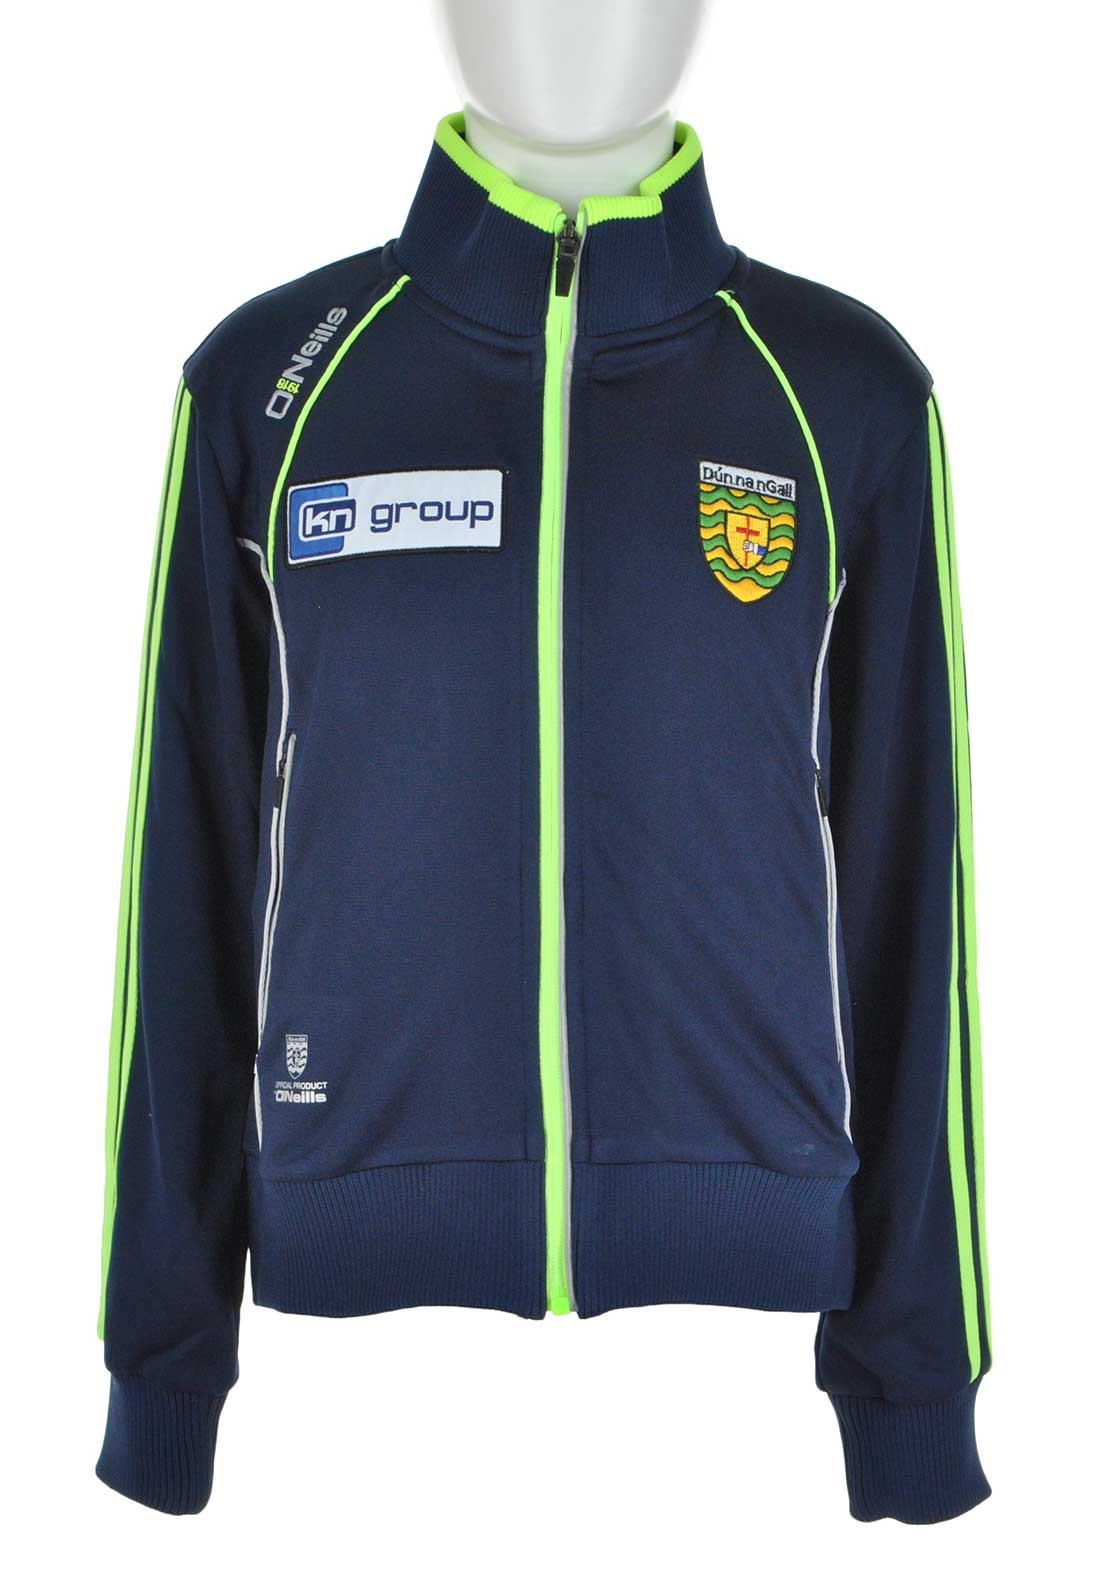 O'Neills Donegal GAA Ormond Full Zip Jacket, Navy